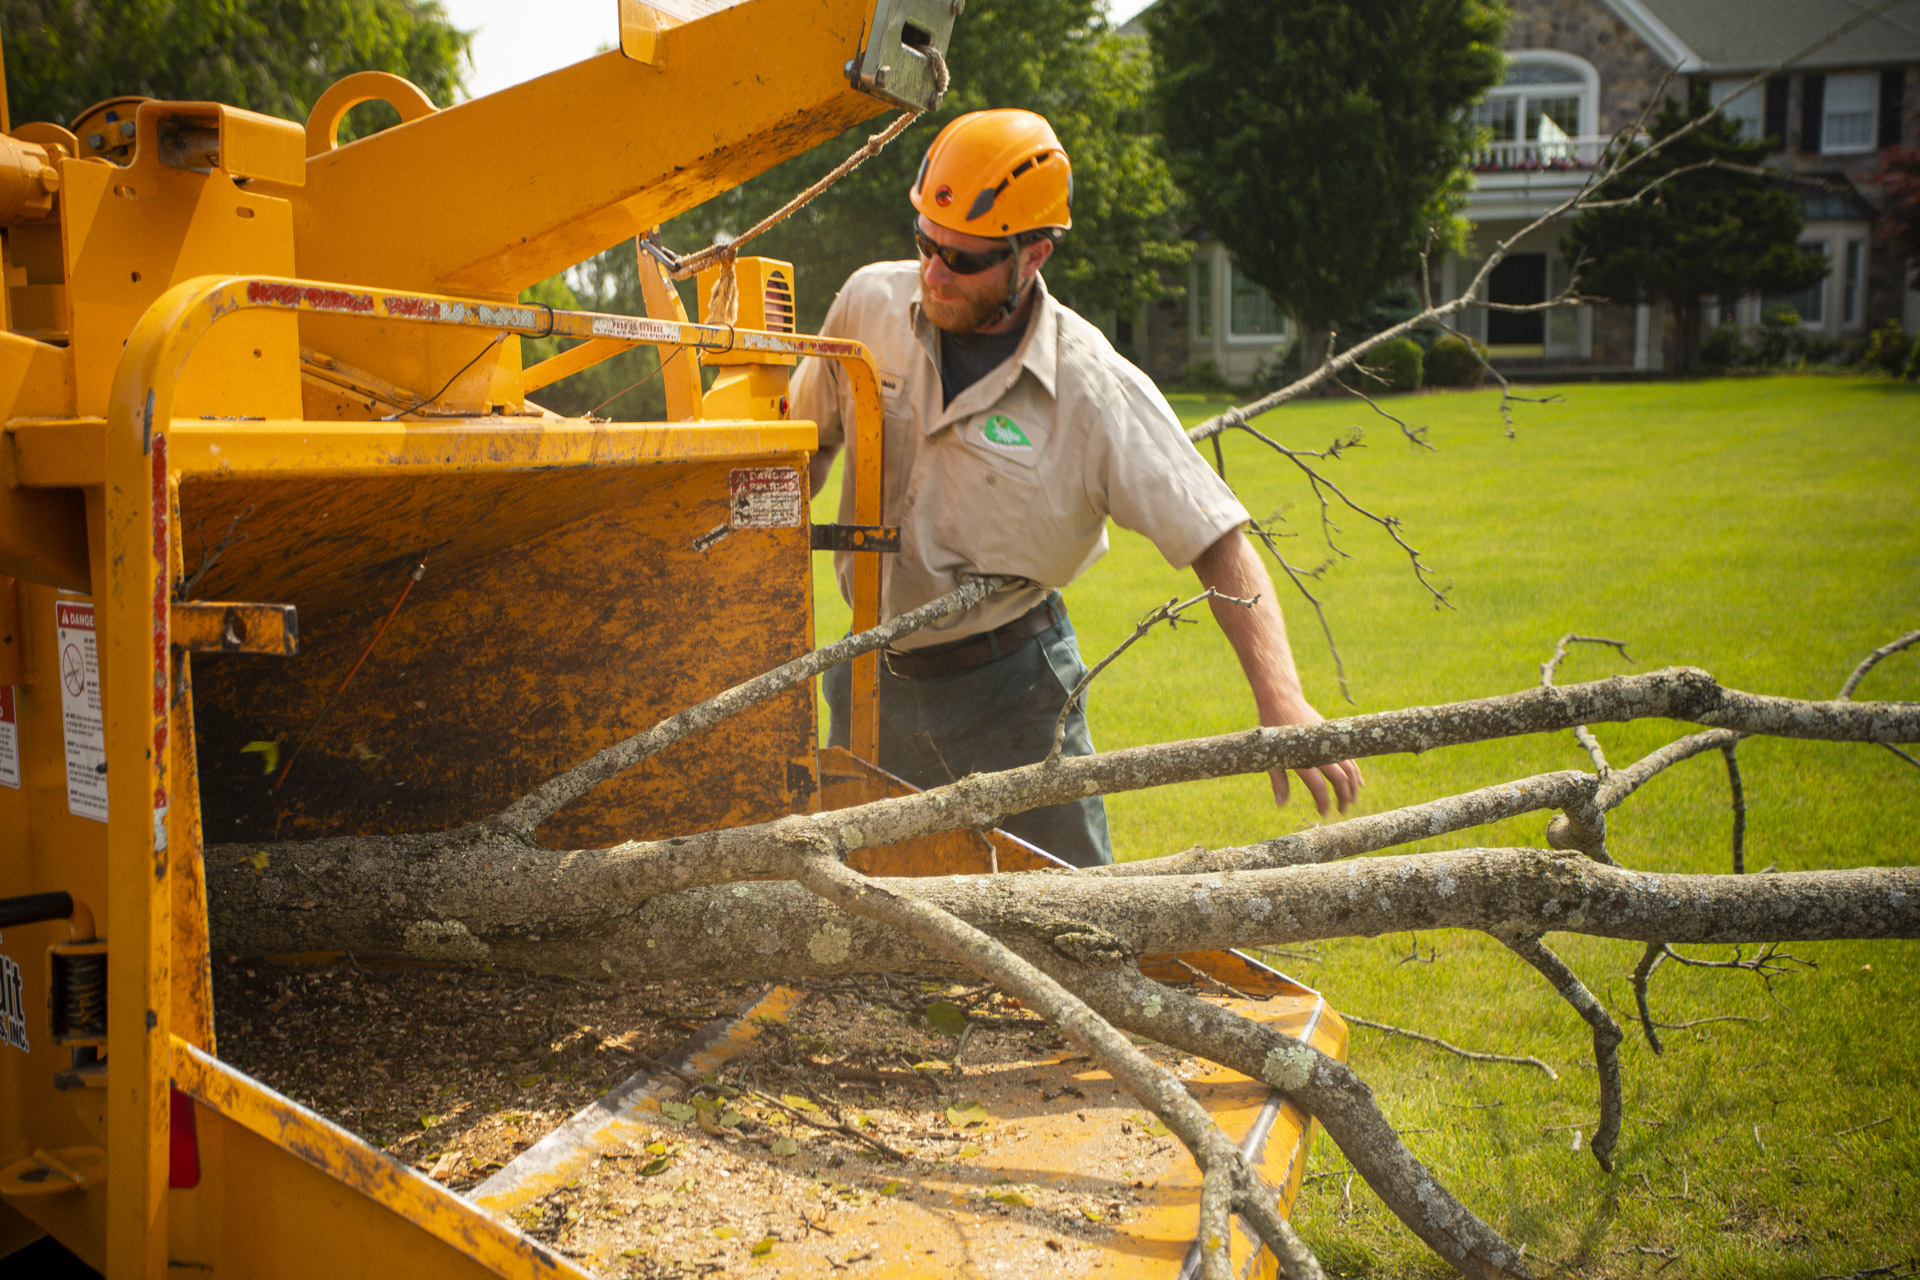 Tree removal technician placing trees in wood chipper